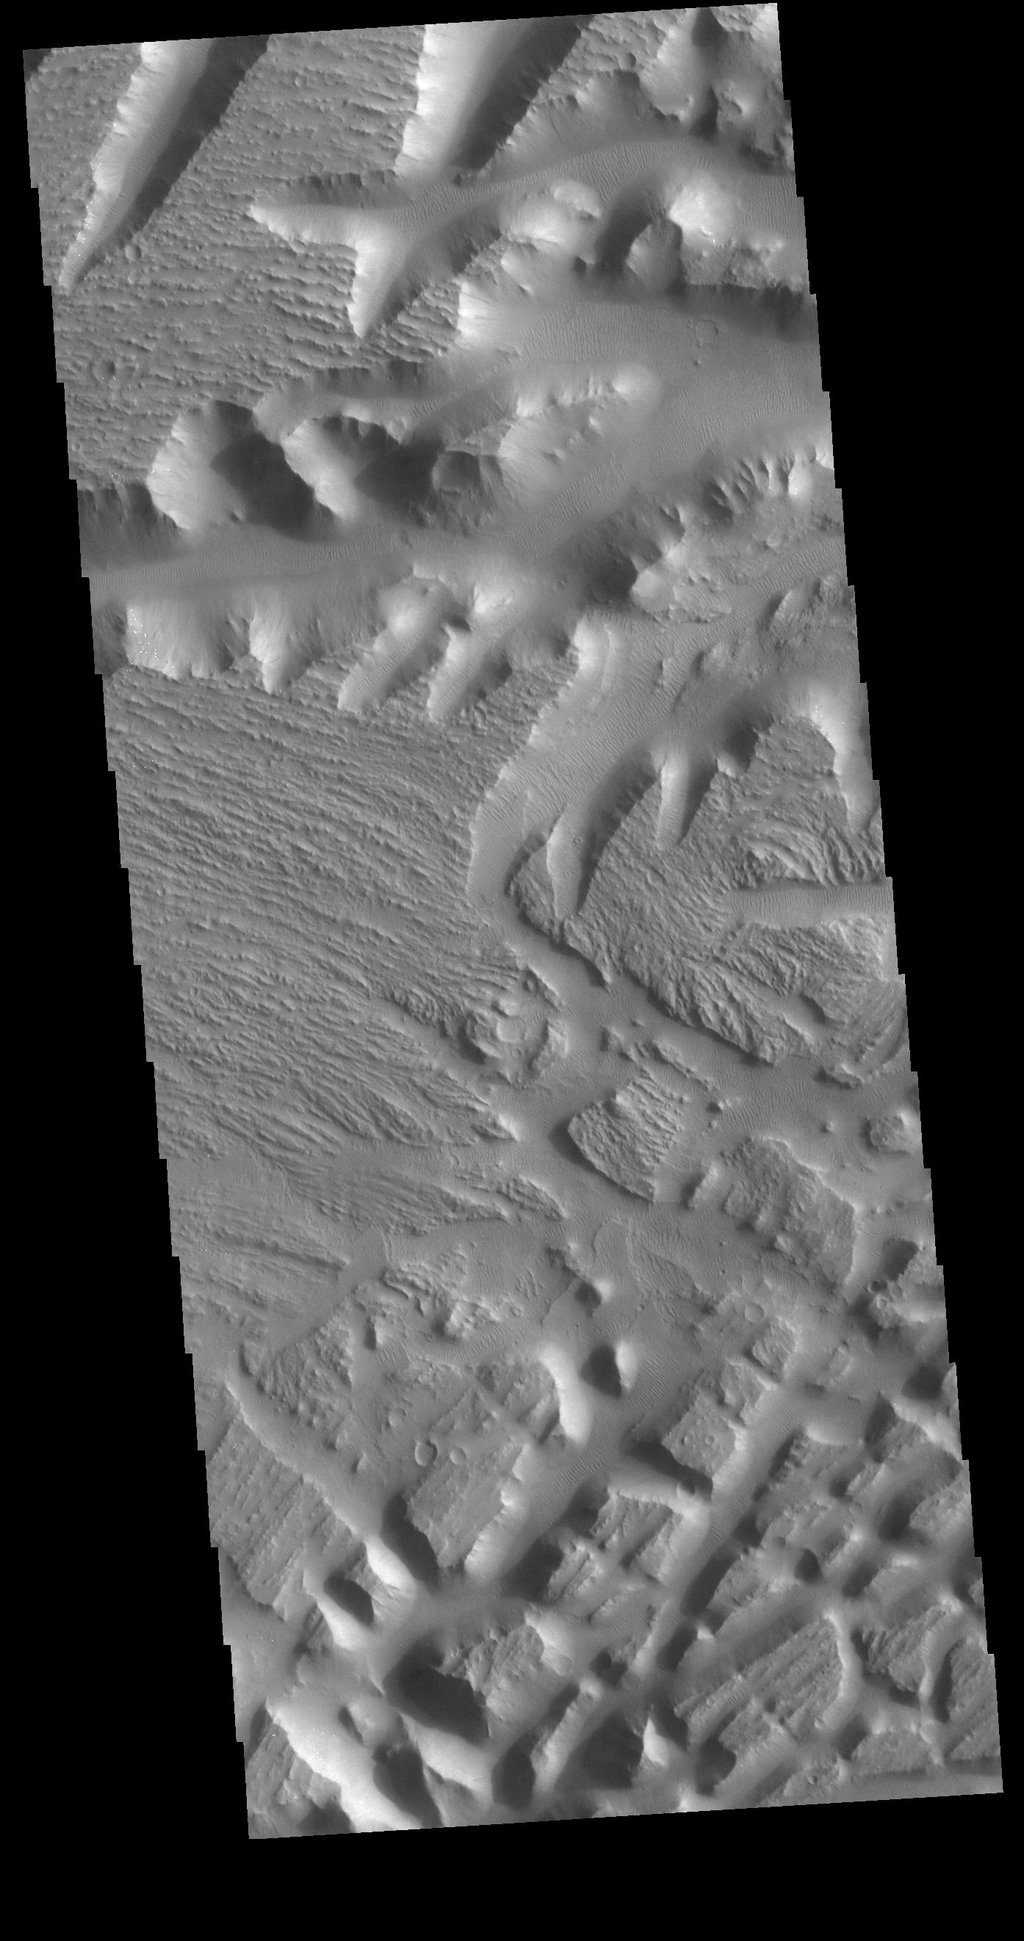 This image from NASA's Mars Odyssey shows part of Nilus Mensae, a complex region of tectonic faulting and fluid flow features.